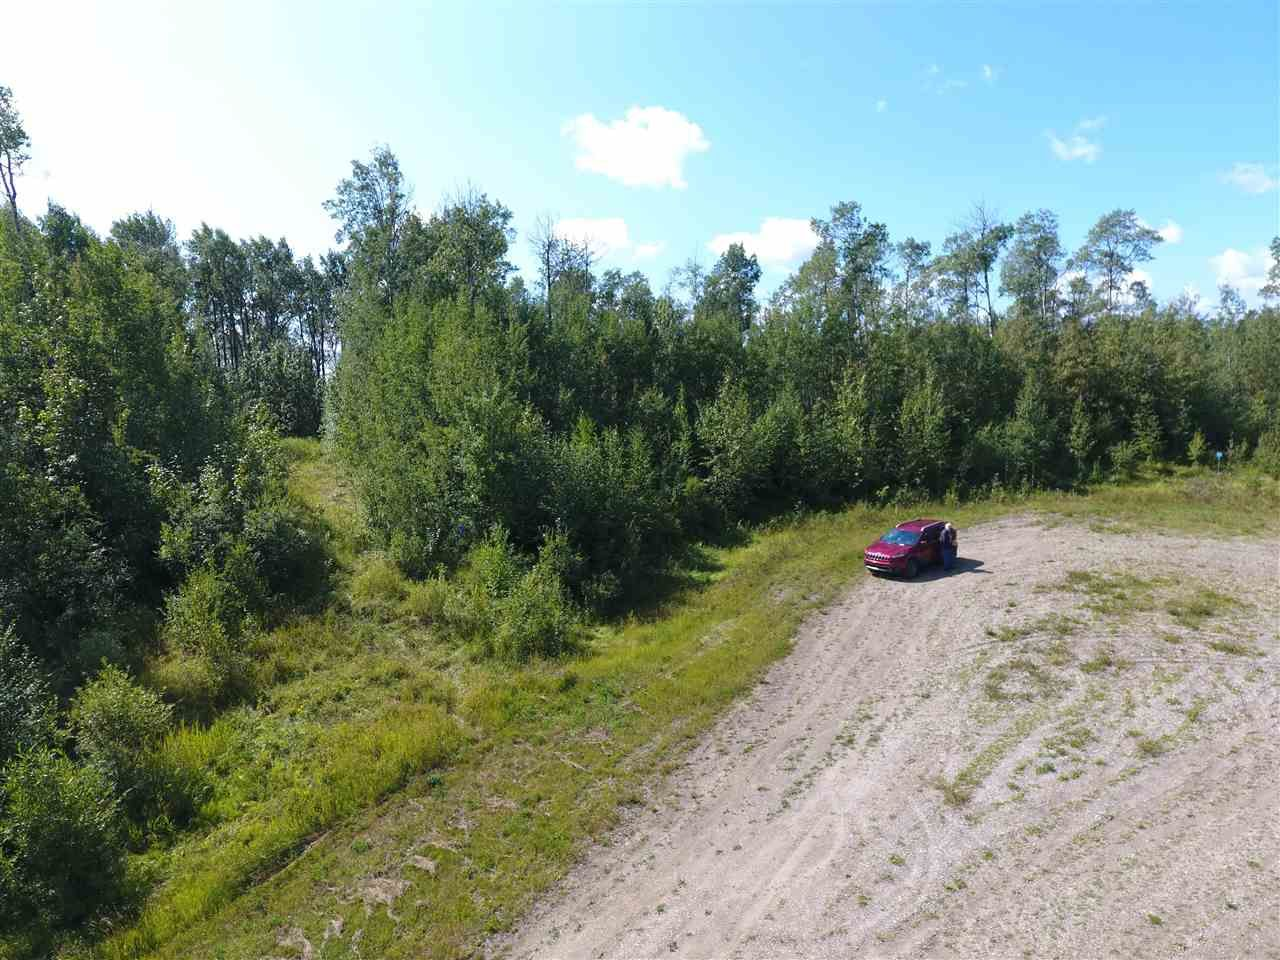 Photo 11: Photos: 22 Morgan Way: Rural Lac Ste. Anne County Rural Land/Vacant Lot for sale : MLS®# E4209833